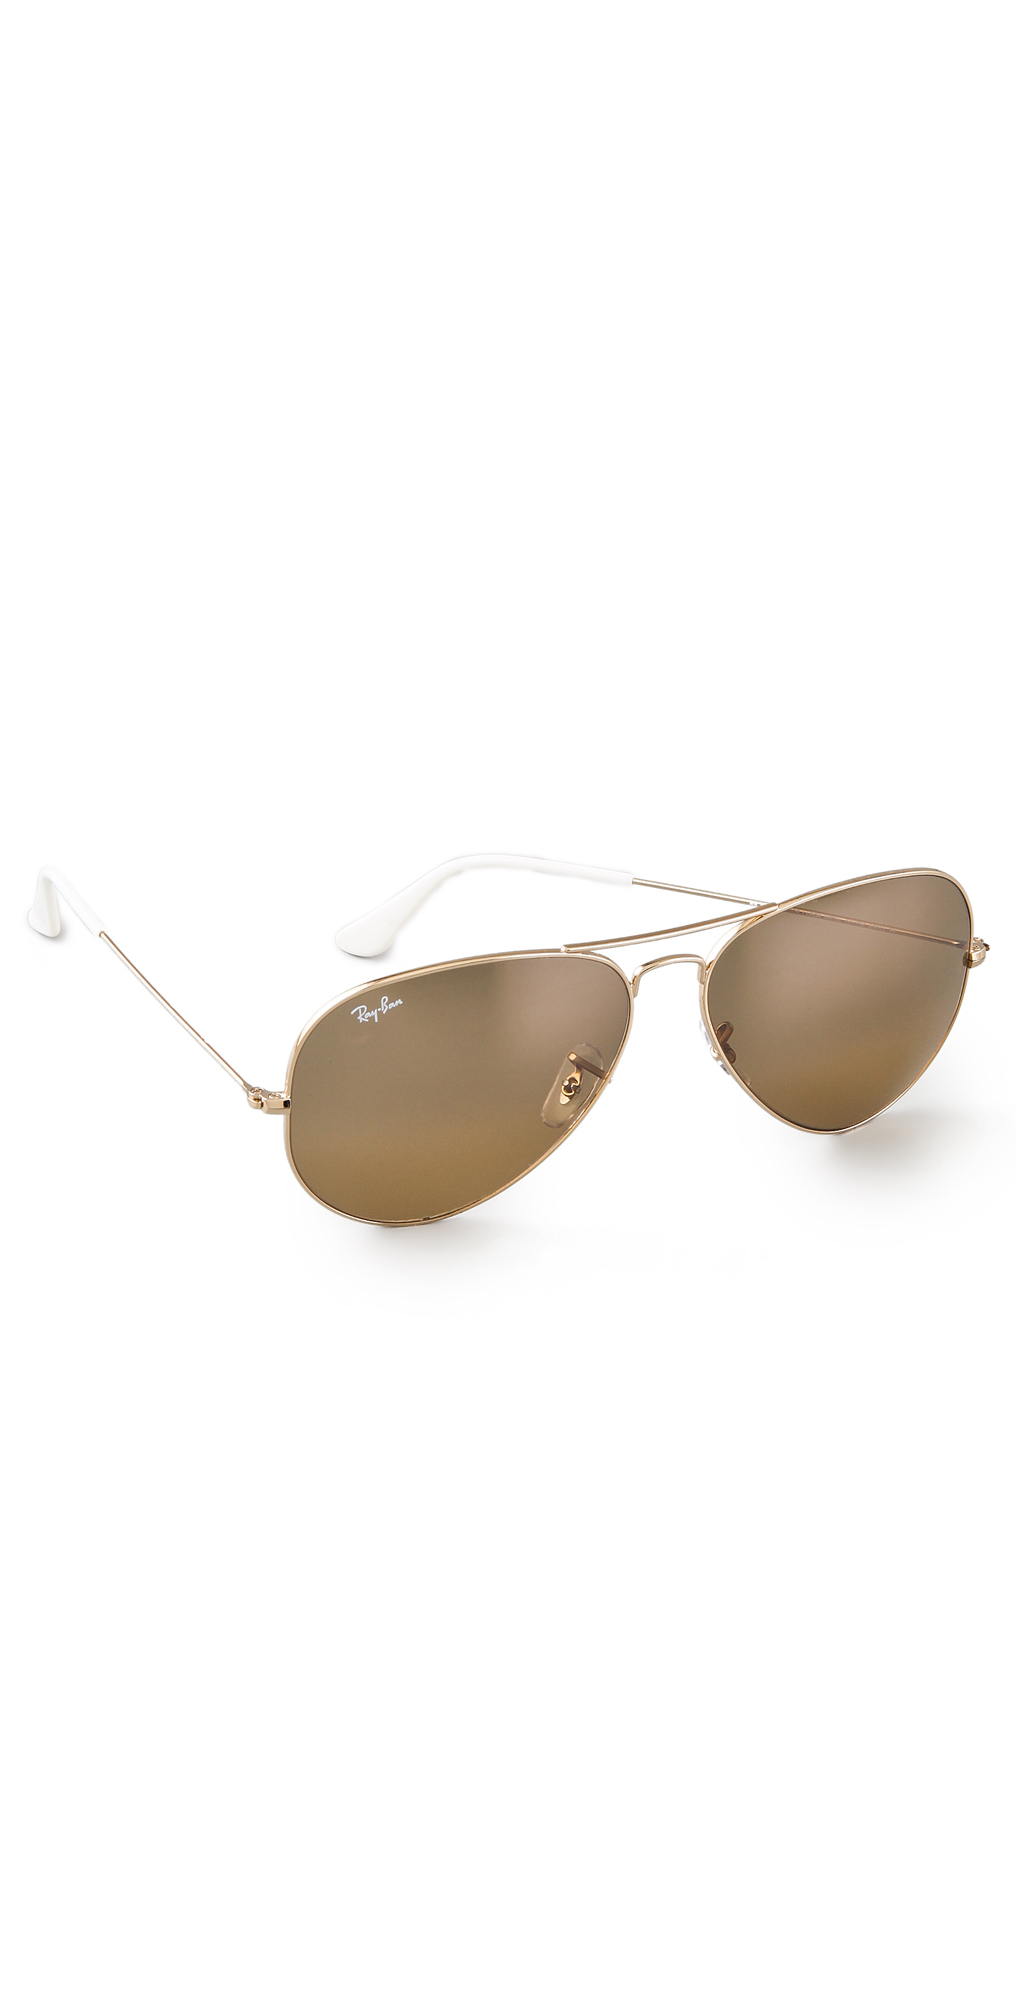 235cea2553 Ray-Ban RB3025 Oversized Mirrored Original Aviator Sunglasses